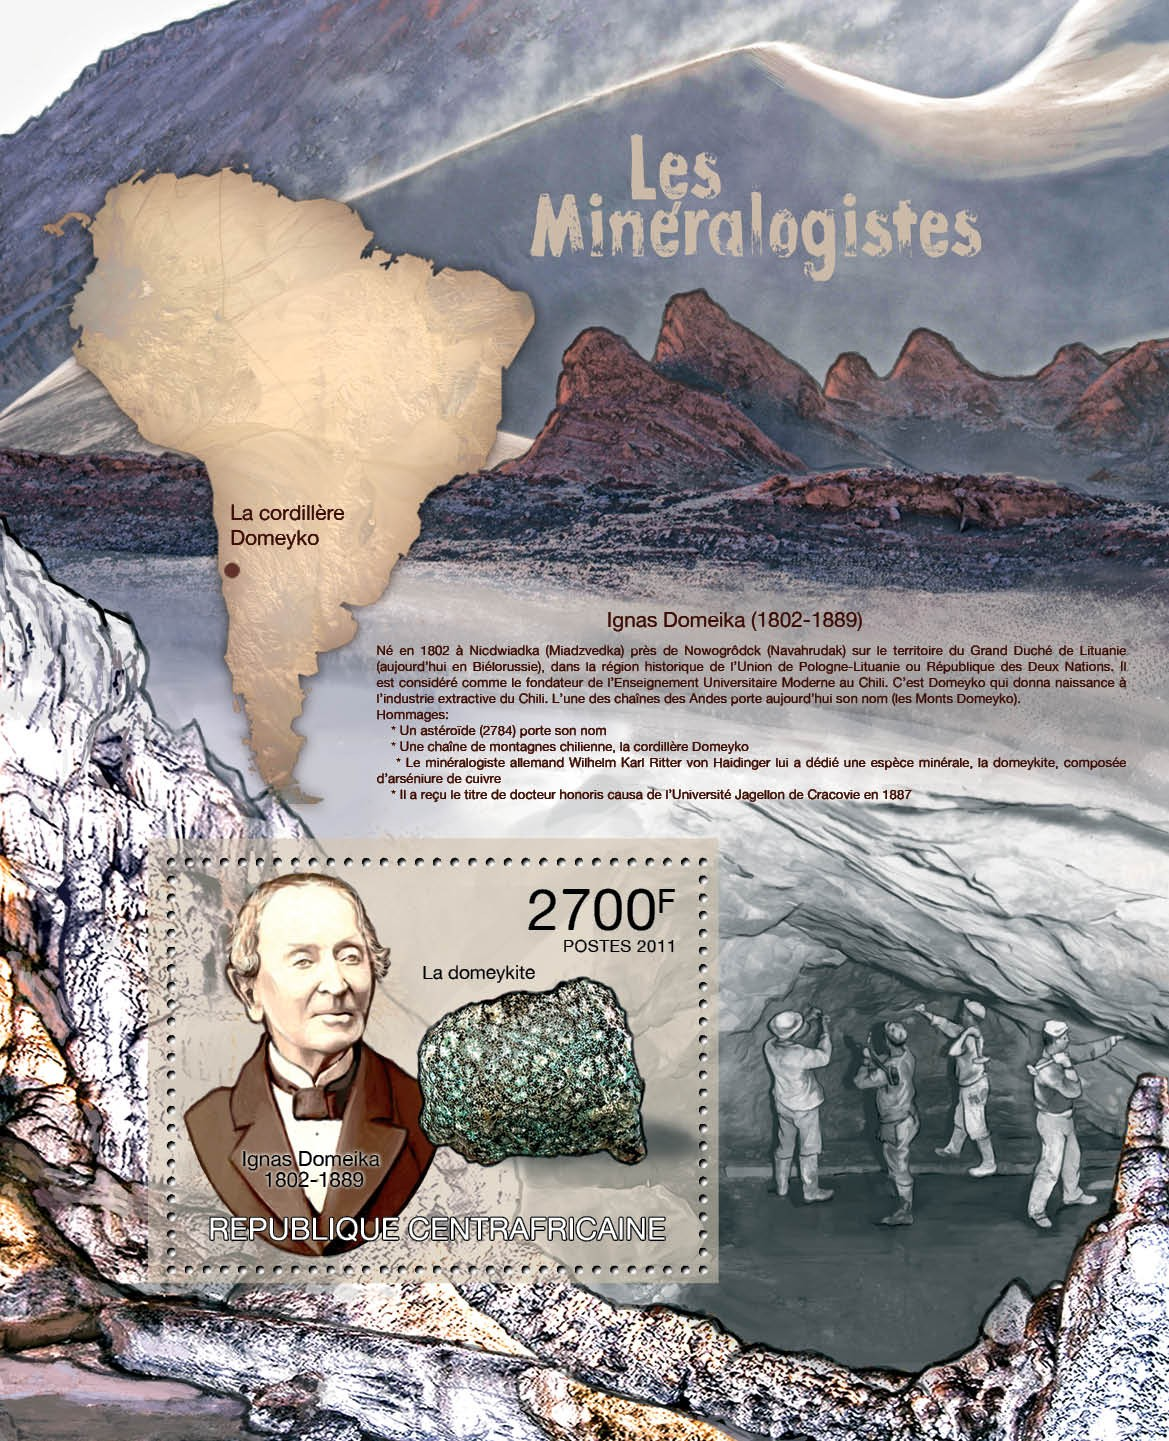 Mineralogists, (I.Domeika). - Issue of Central African republic postage stamps